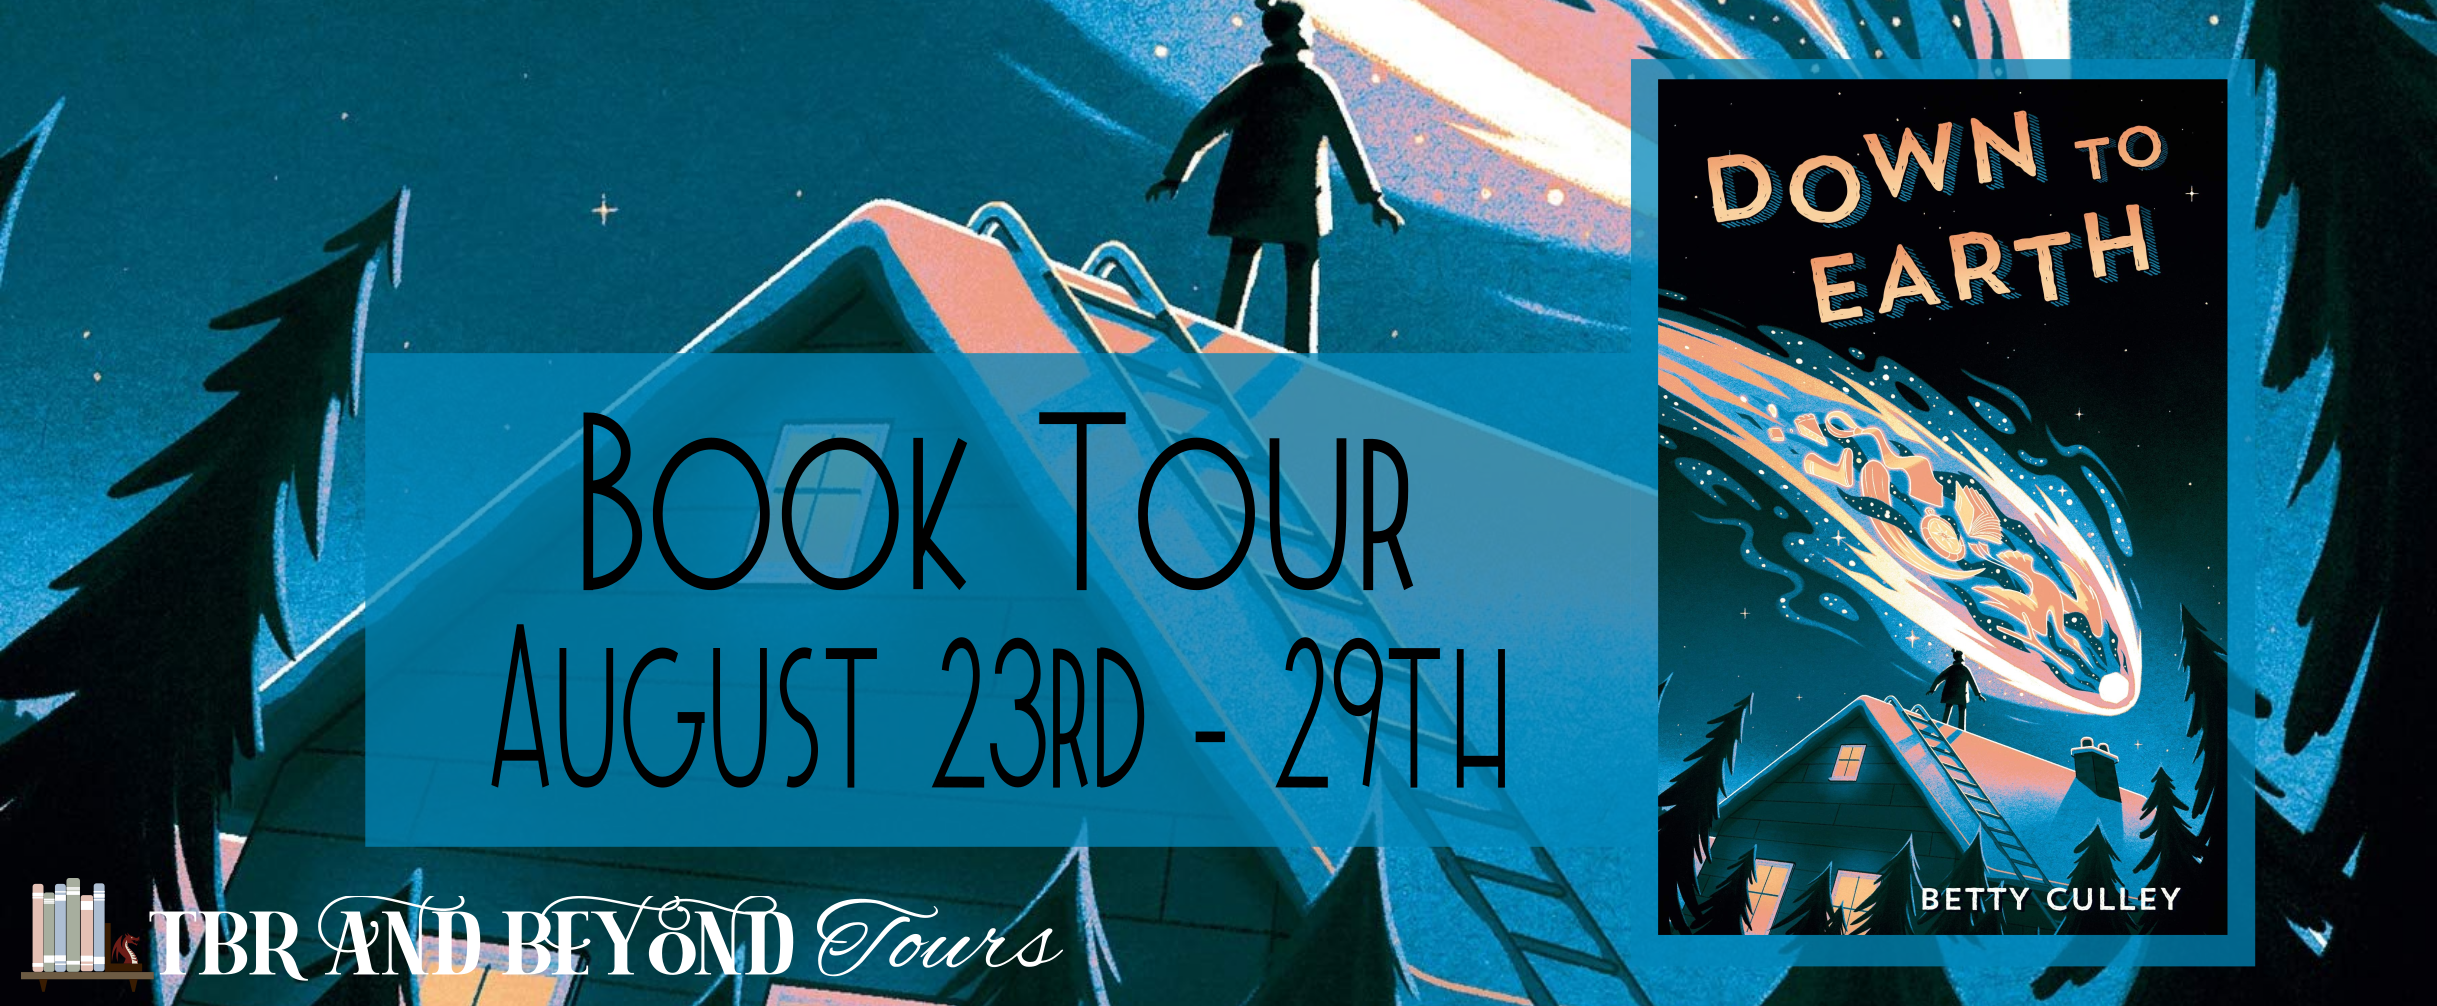 Blog Tour: Down to Earth by Betty Culley (Interview!)